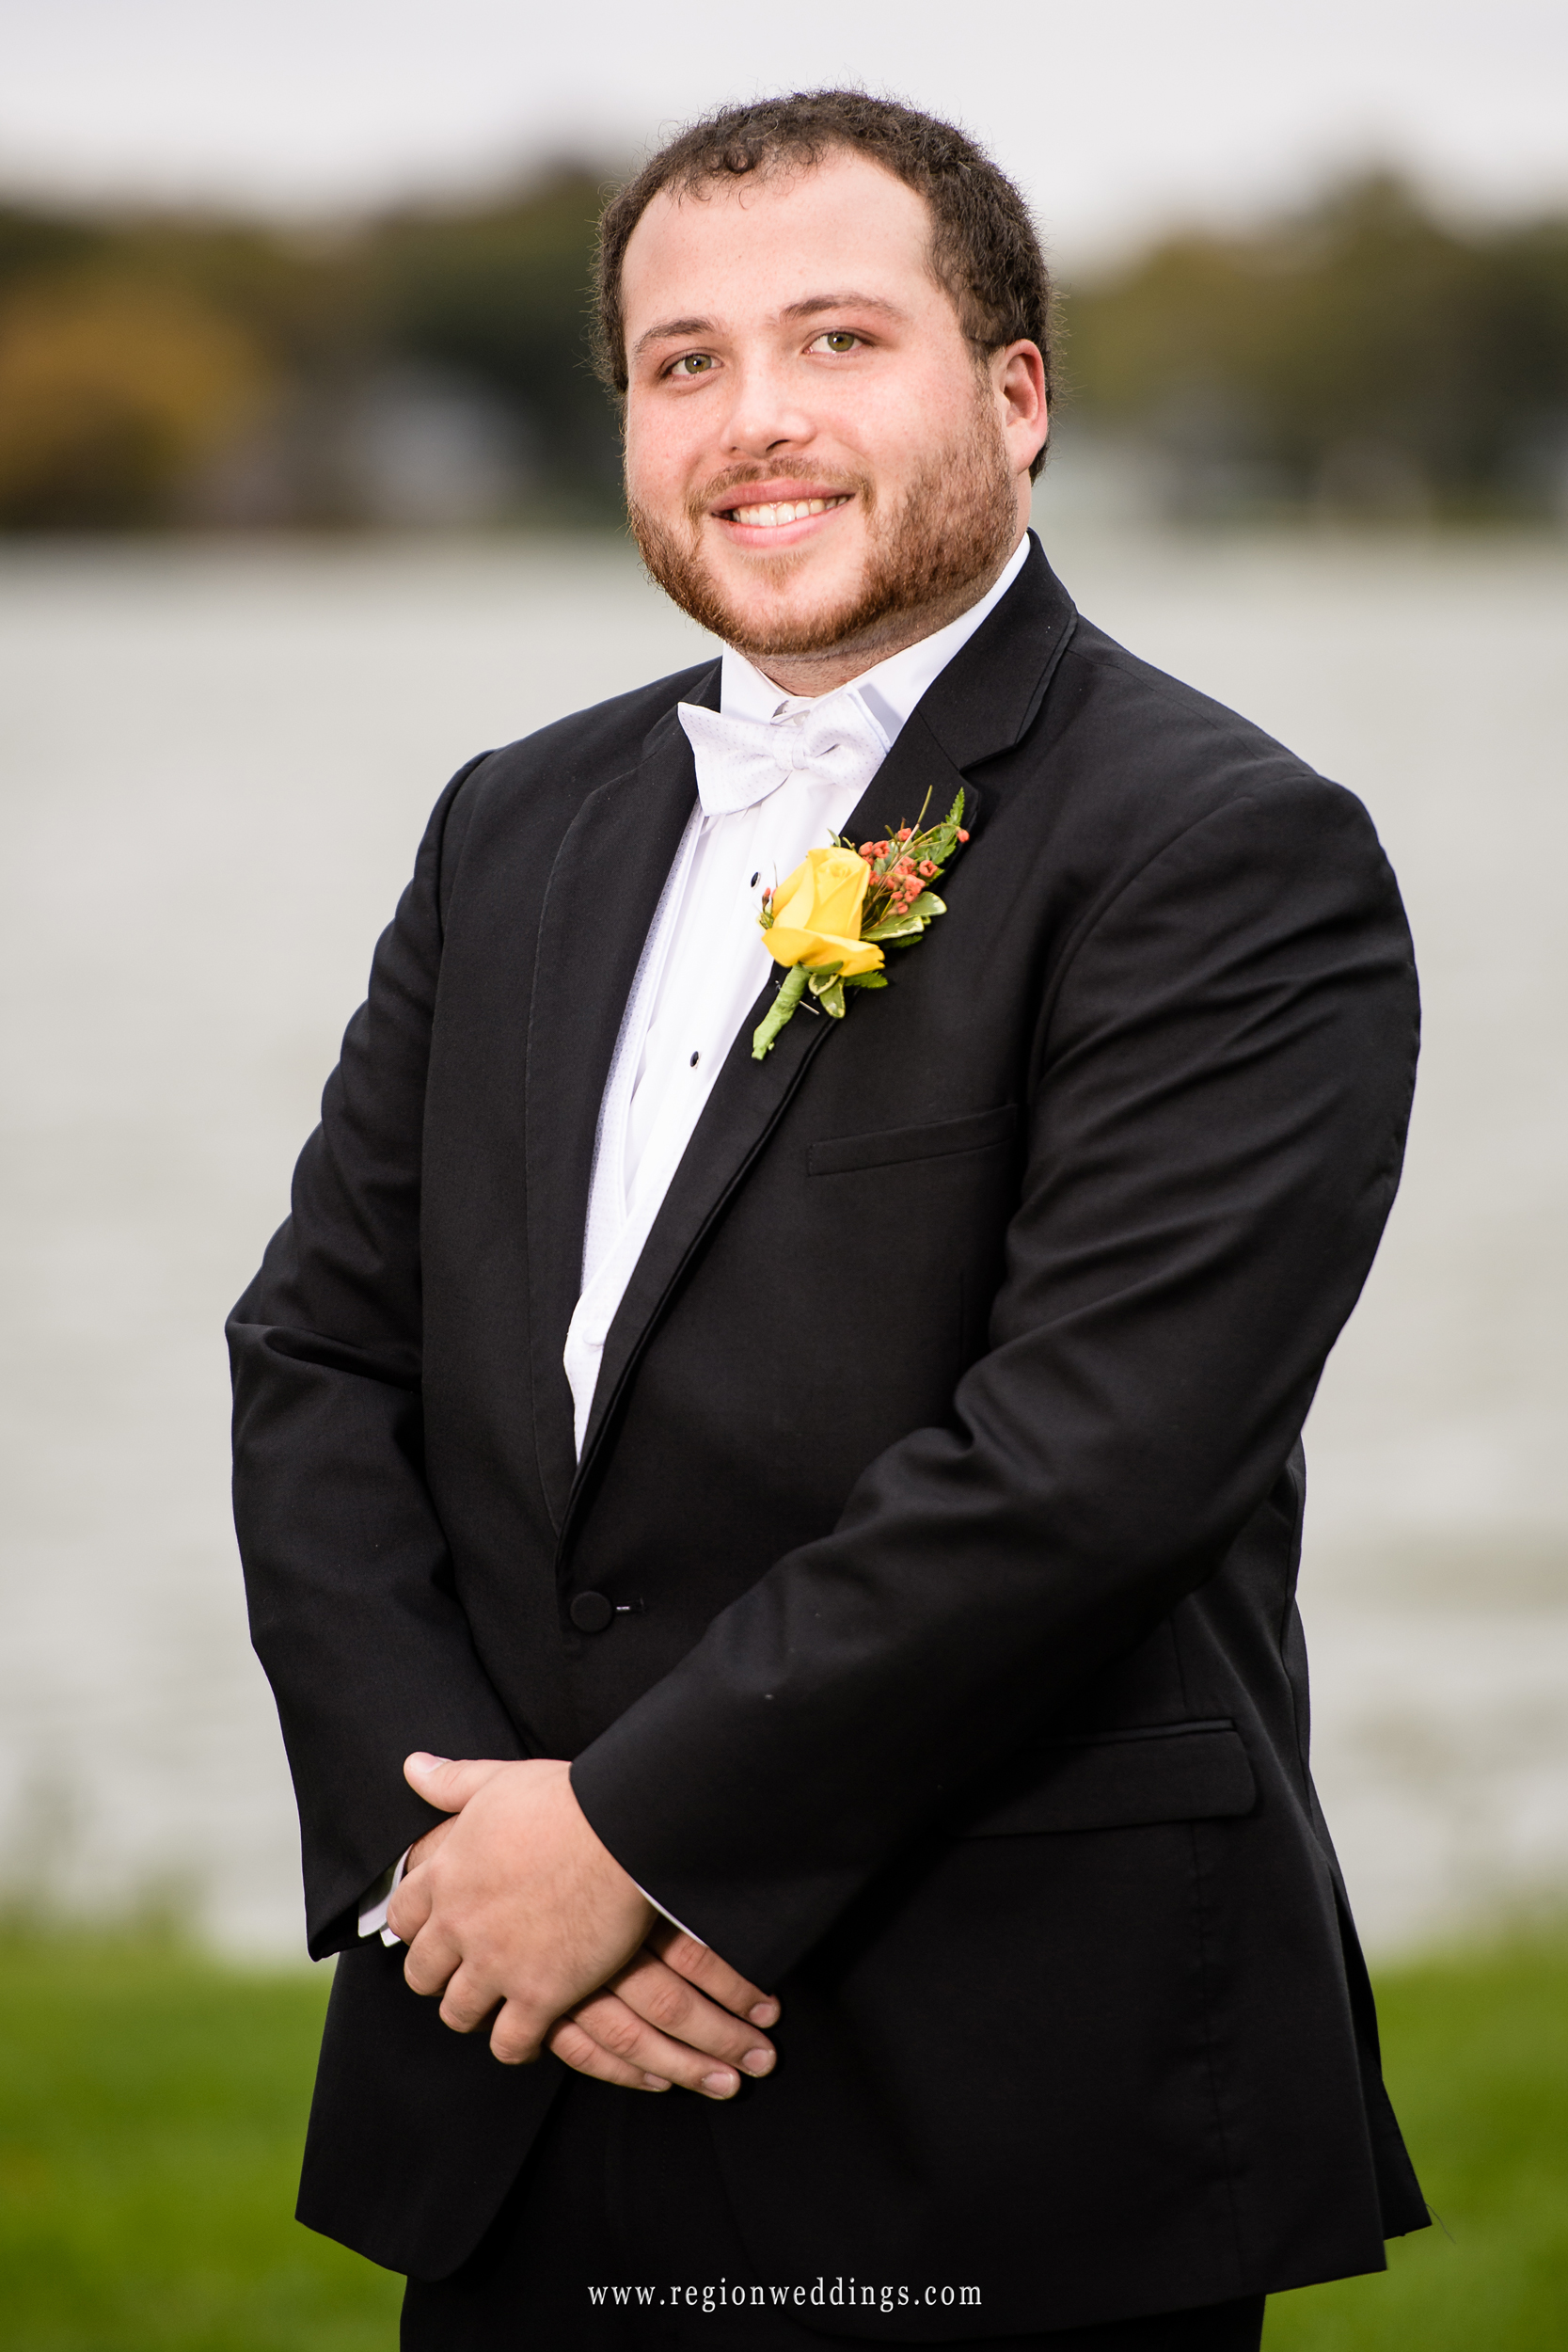 The groom at his Fall wedding at Lighthouse Restaurant.